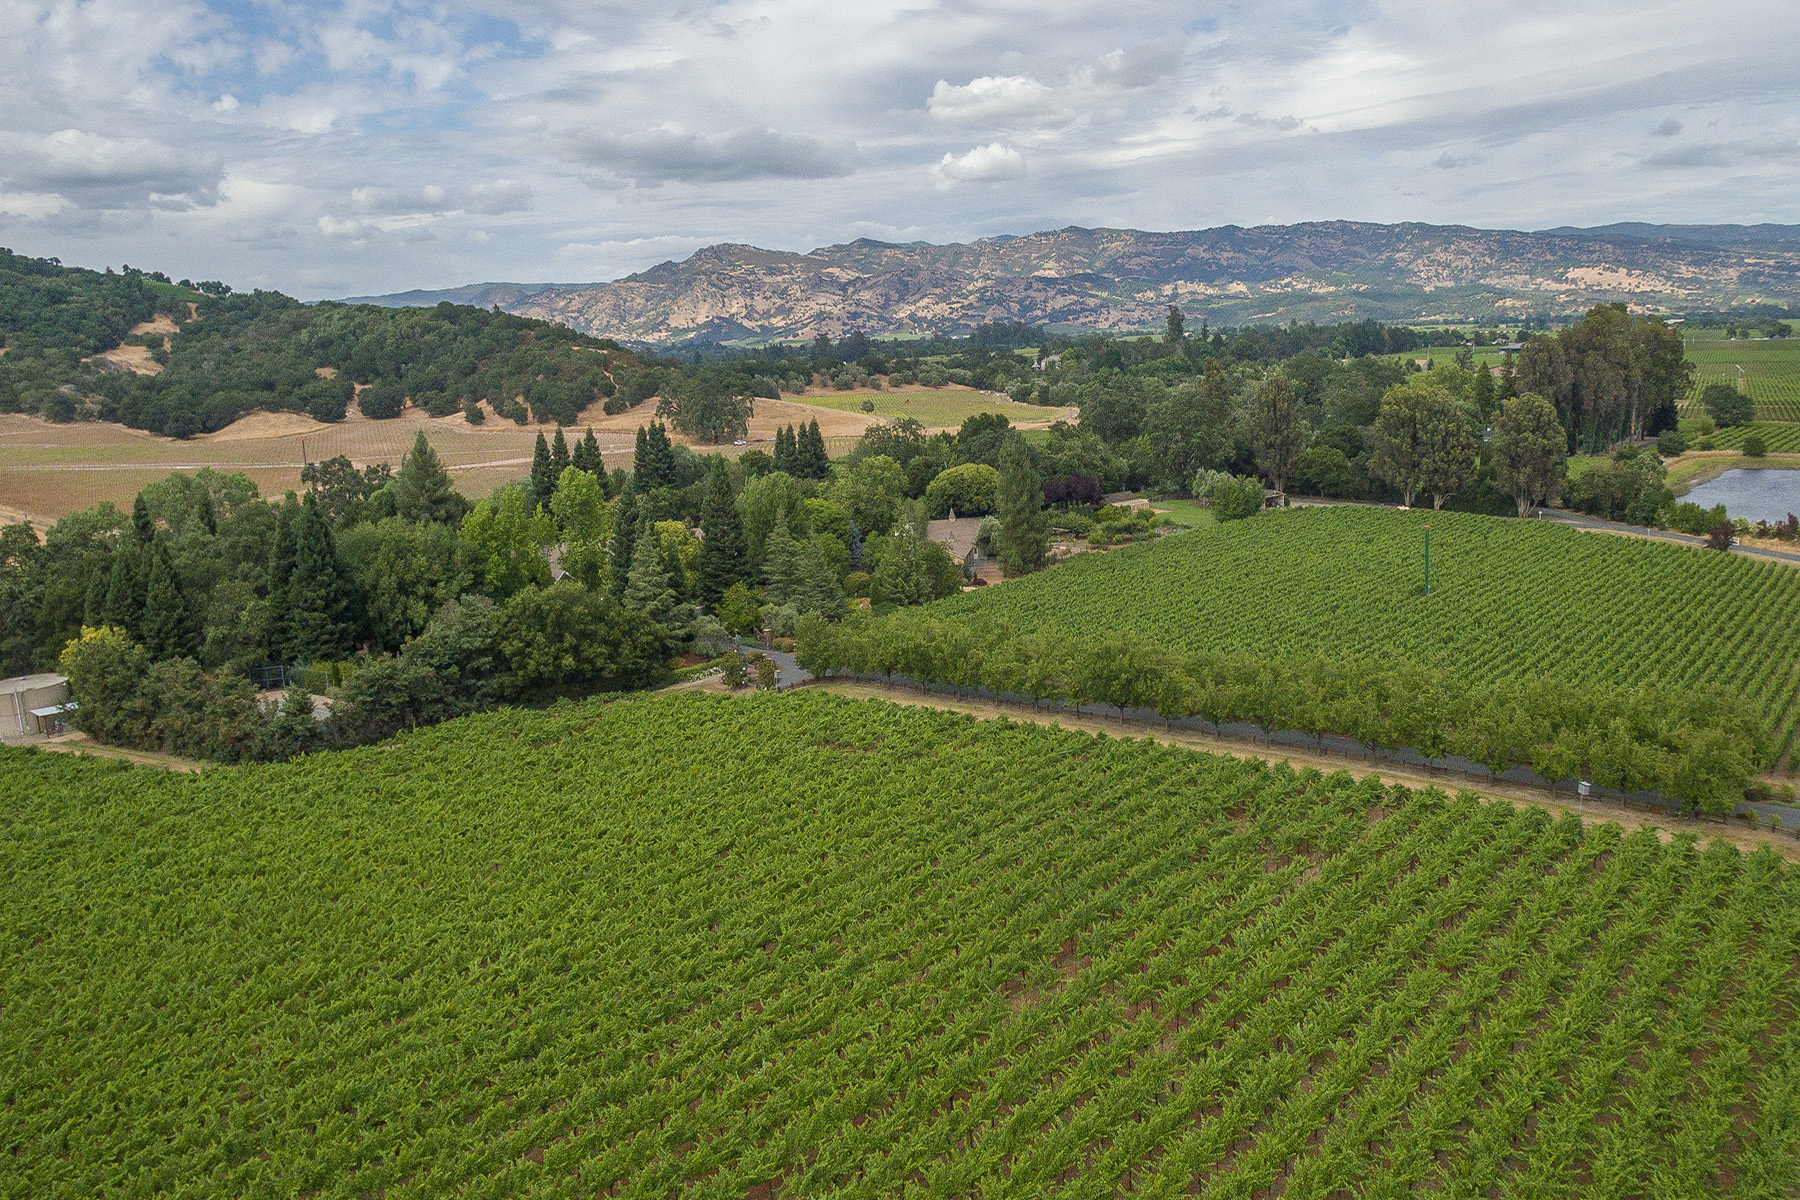 Farm / Ranch / Plantation for Active at 4120 Dry Creek Rd, Napa, CA 94558 4120 Dry Creek Rd Napa, California 94558 United States